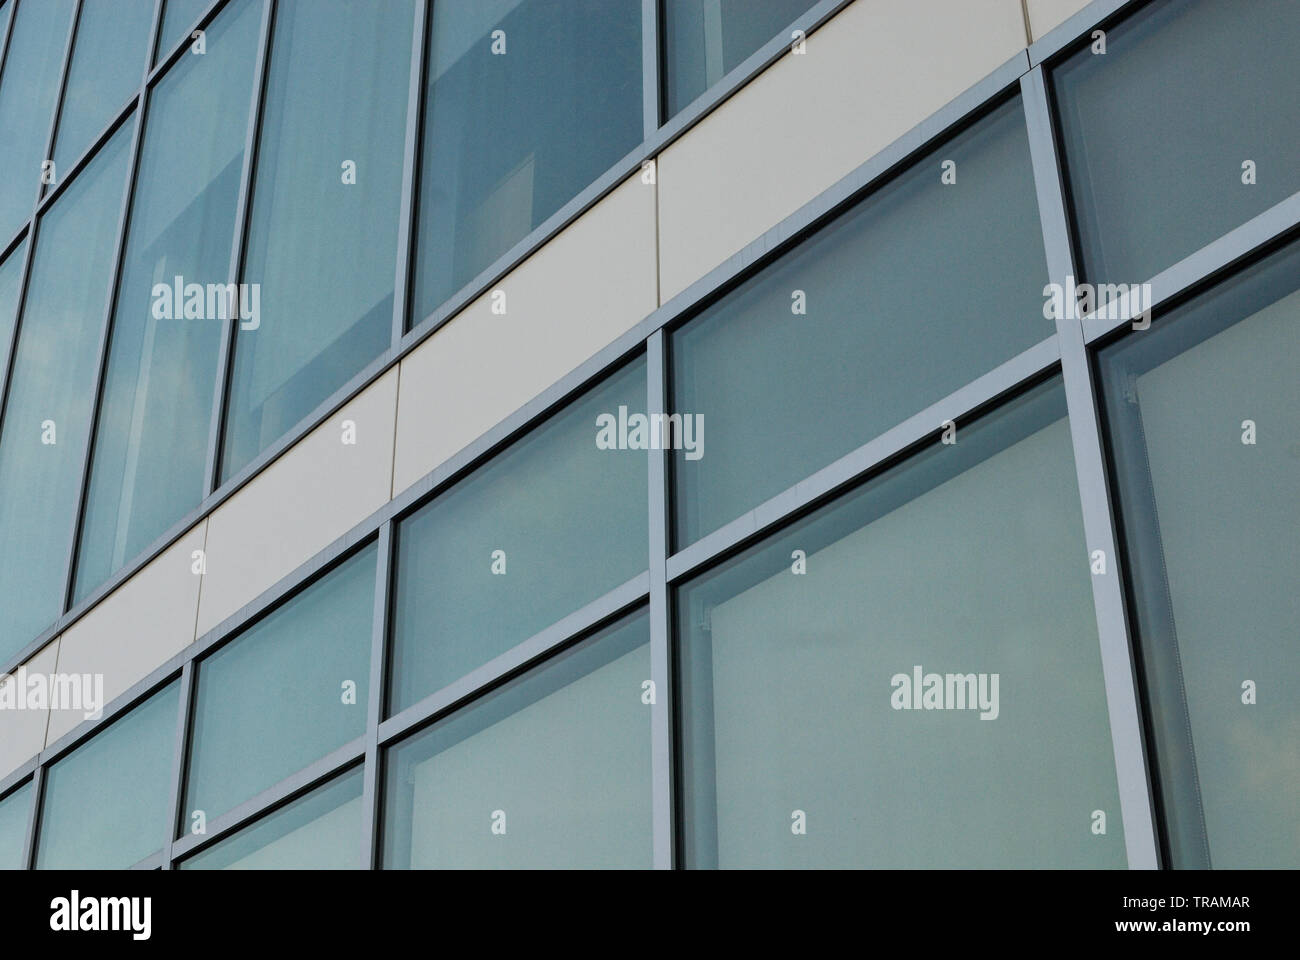 Detail of a modern curtain wall multi-story building. - Stock Image